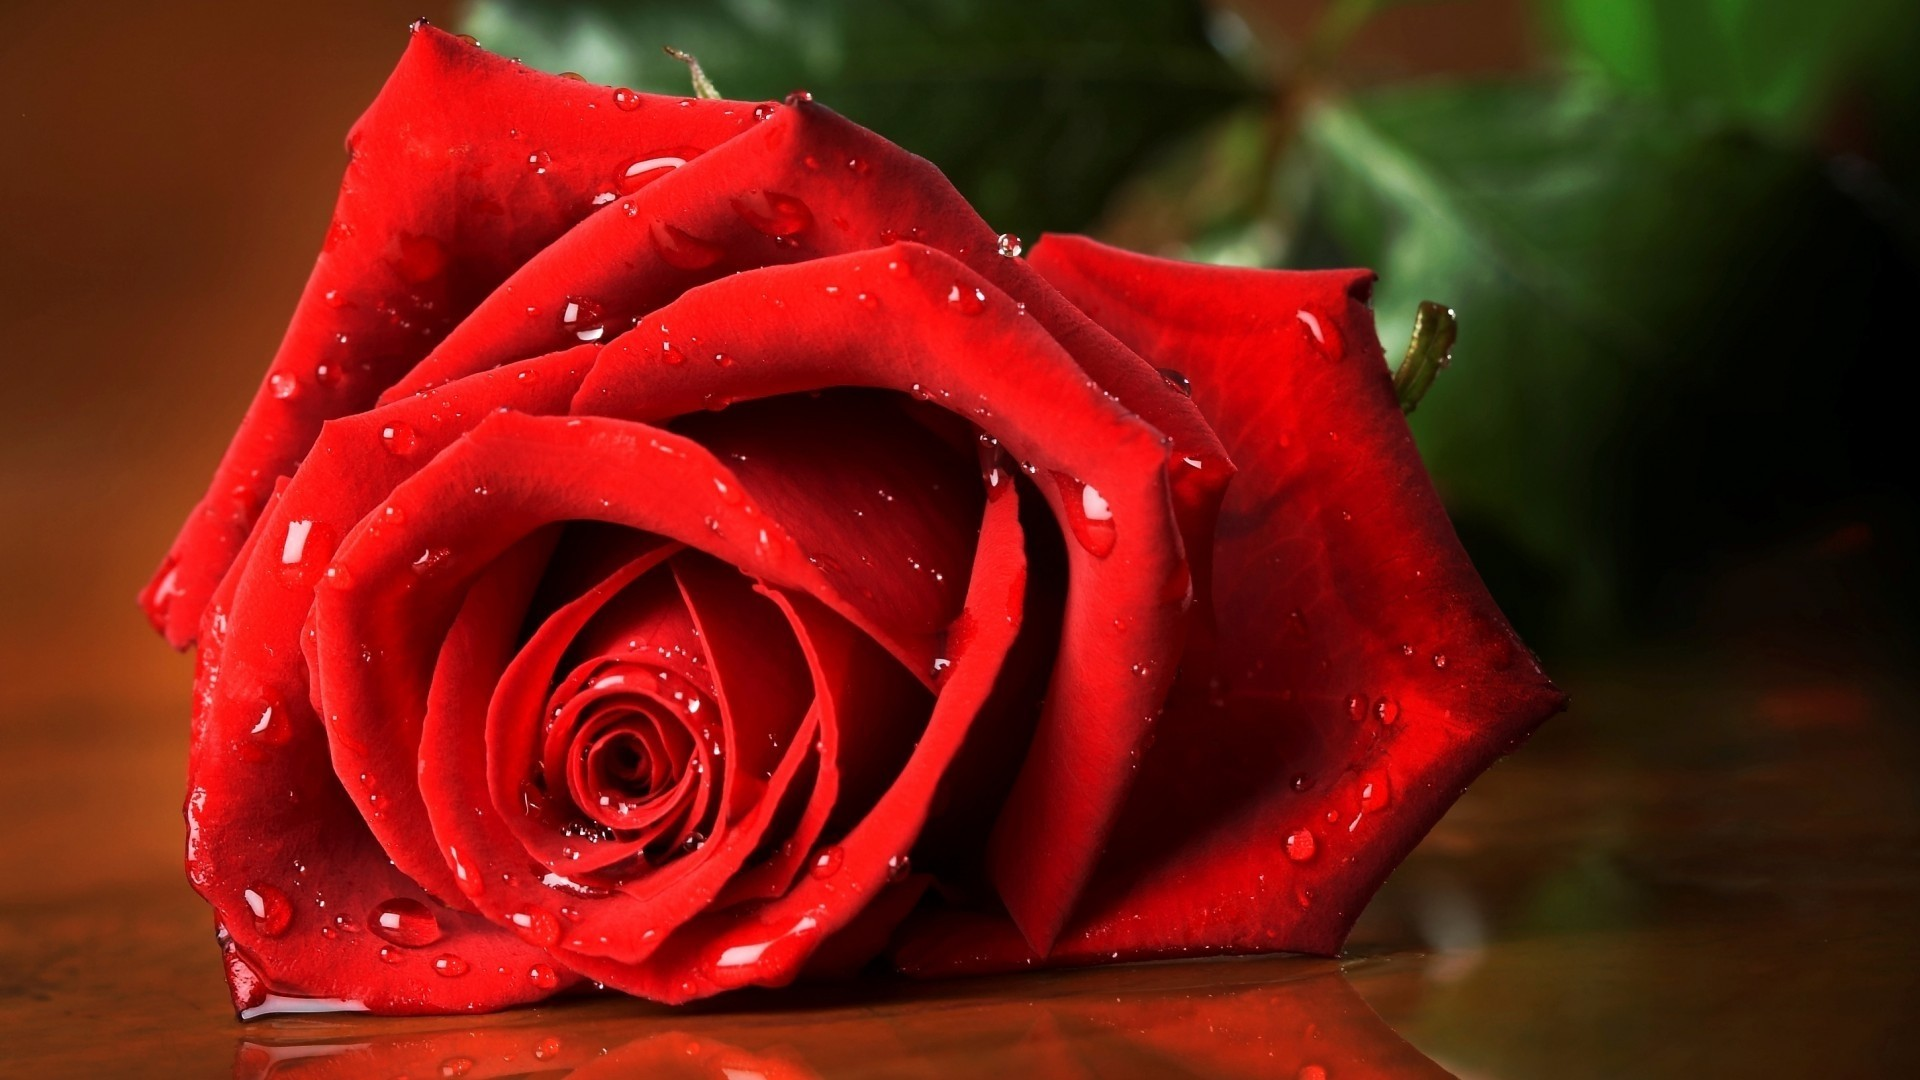 Red Rose Wallpaper and Background